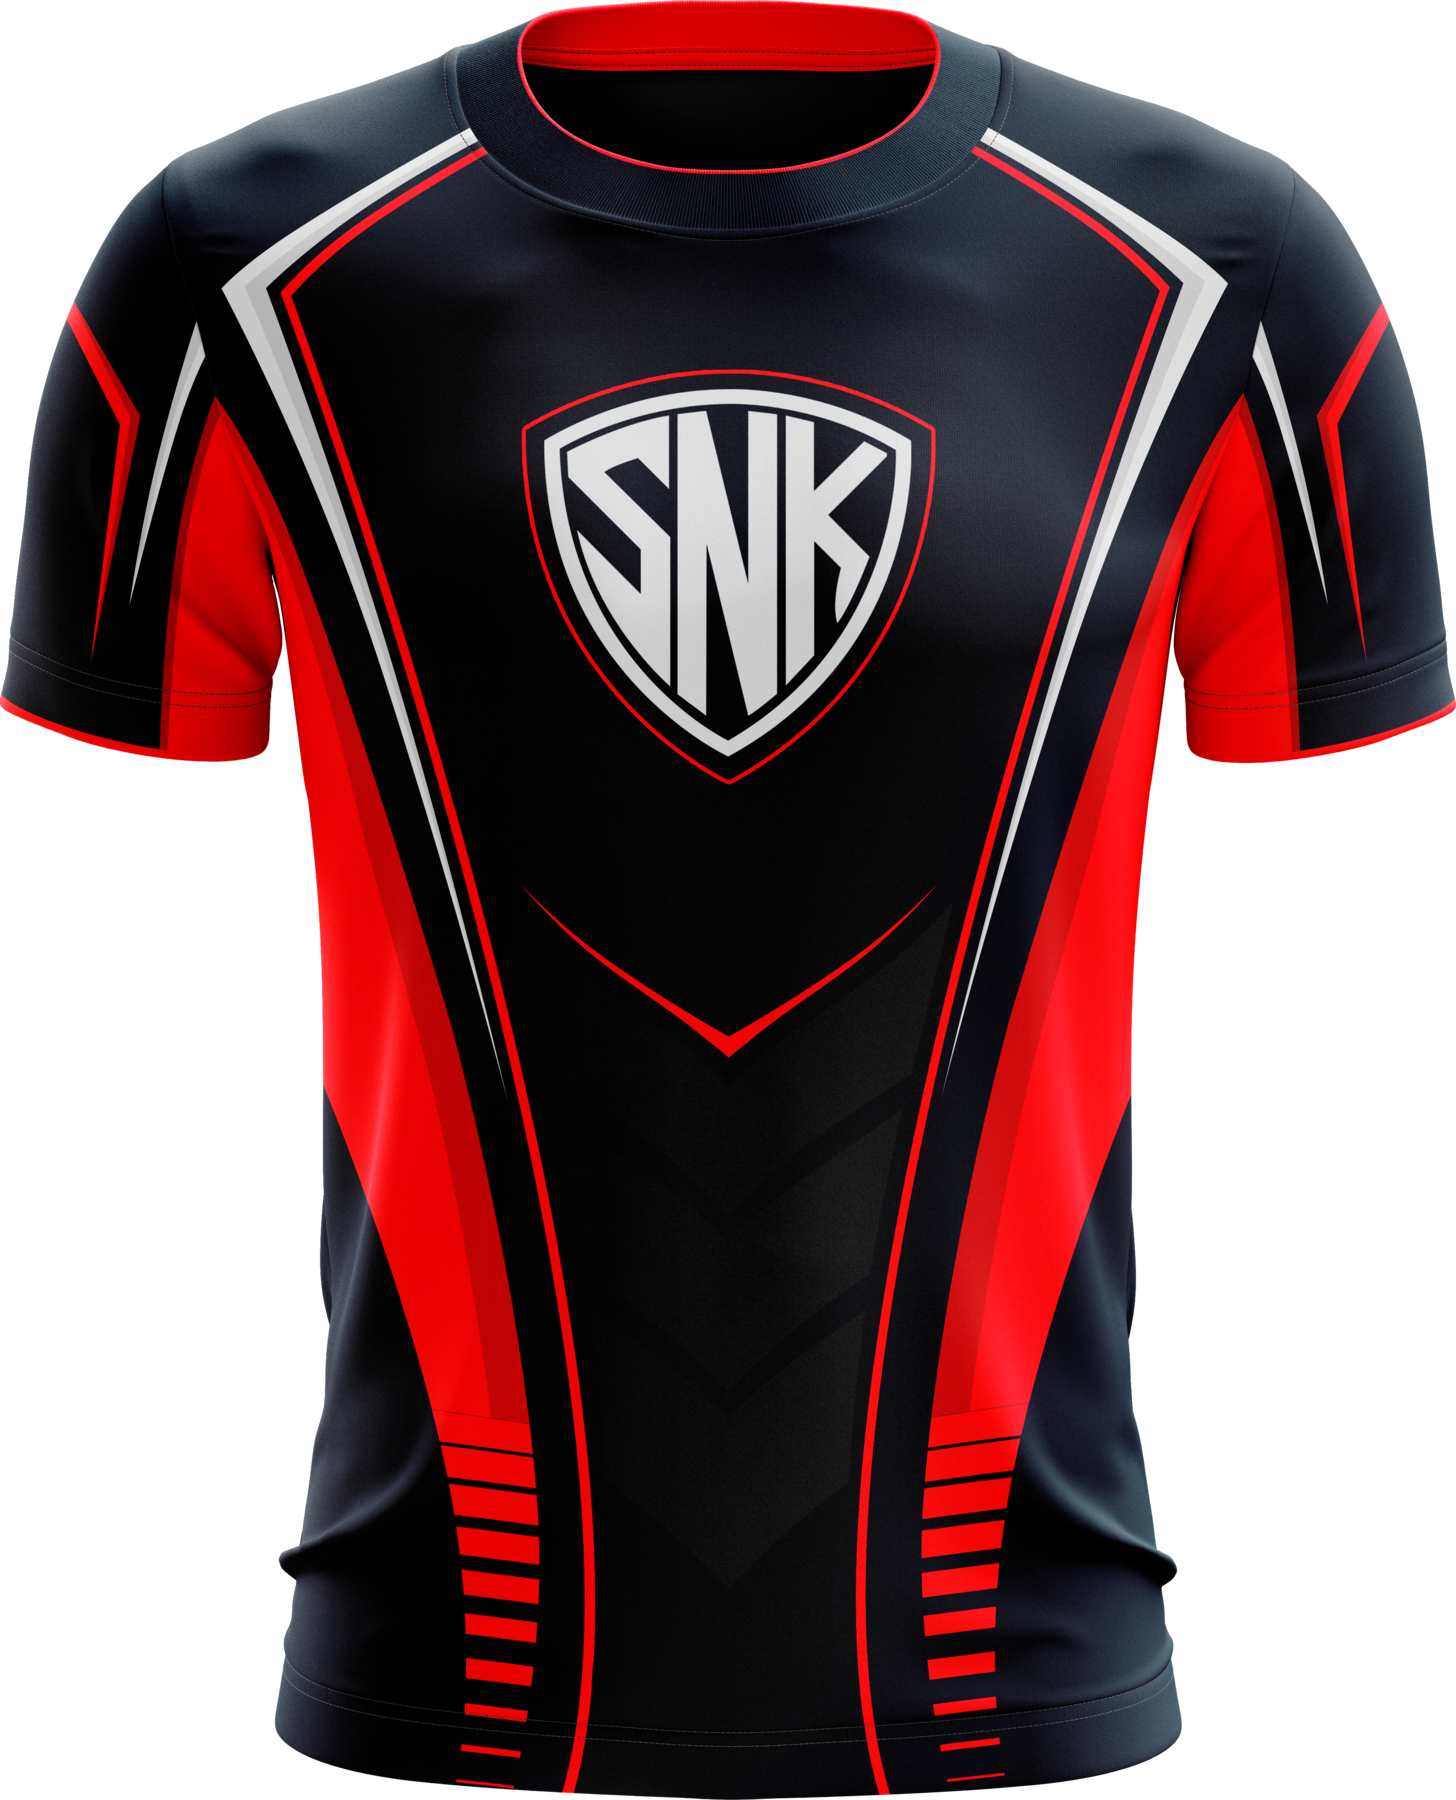 Pin on eSports Jersey Template